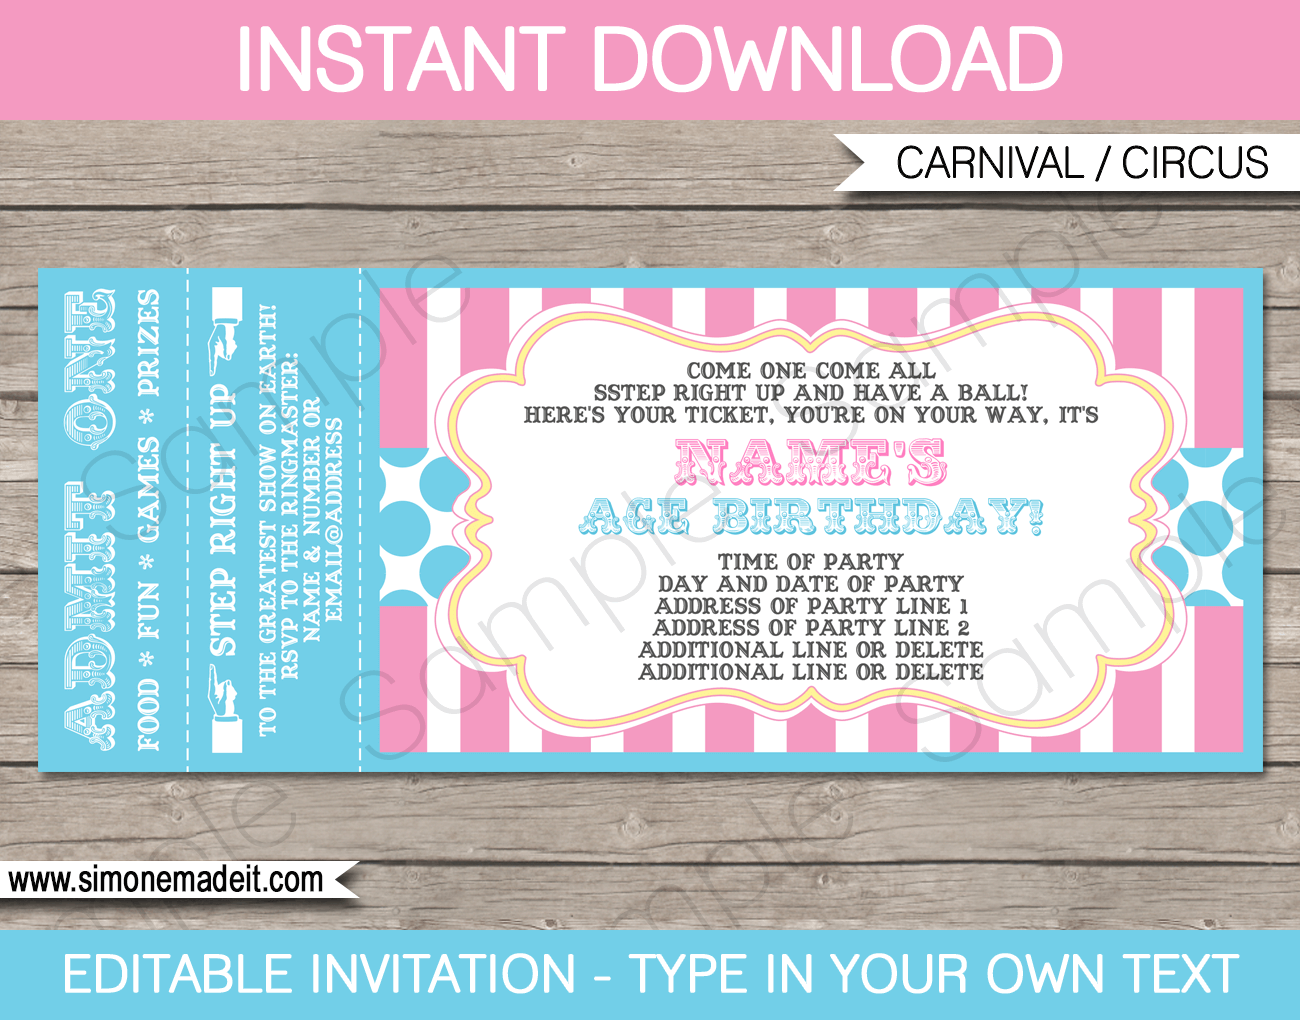 ticket invitation template free carnival party ticket invitations template carnival or